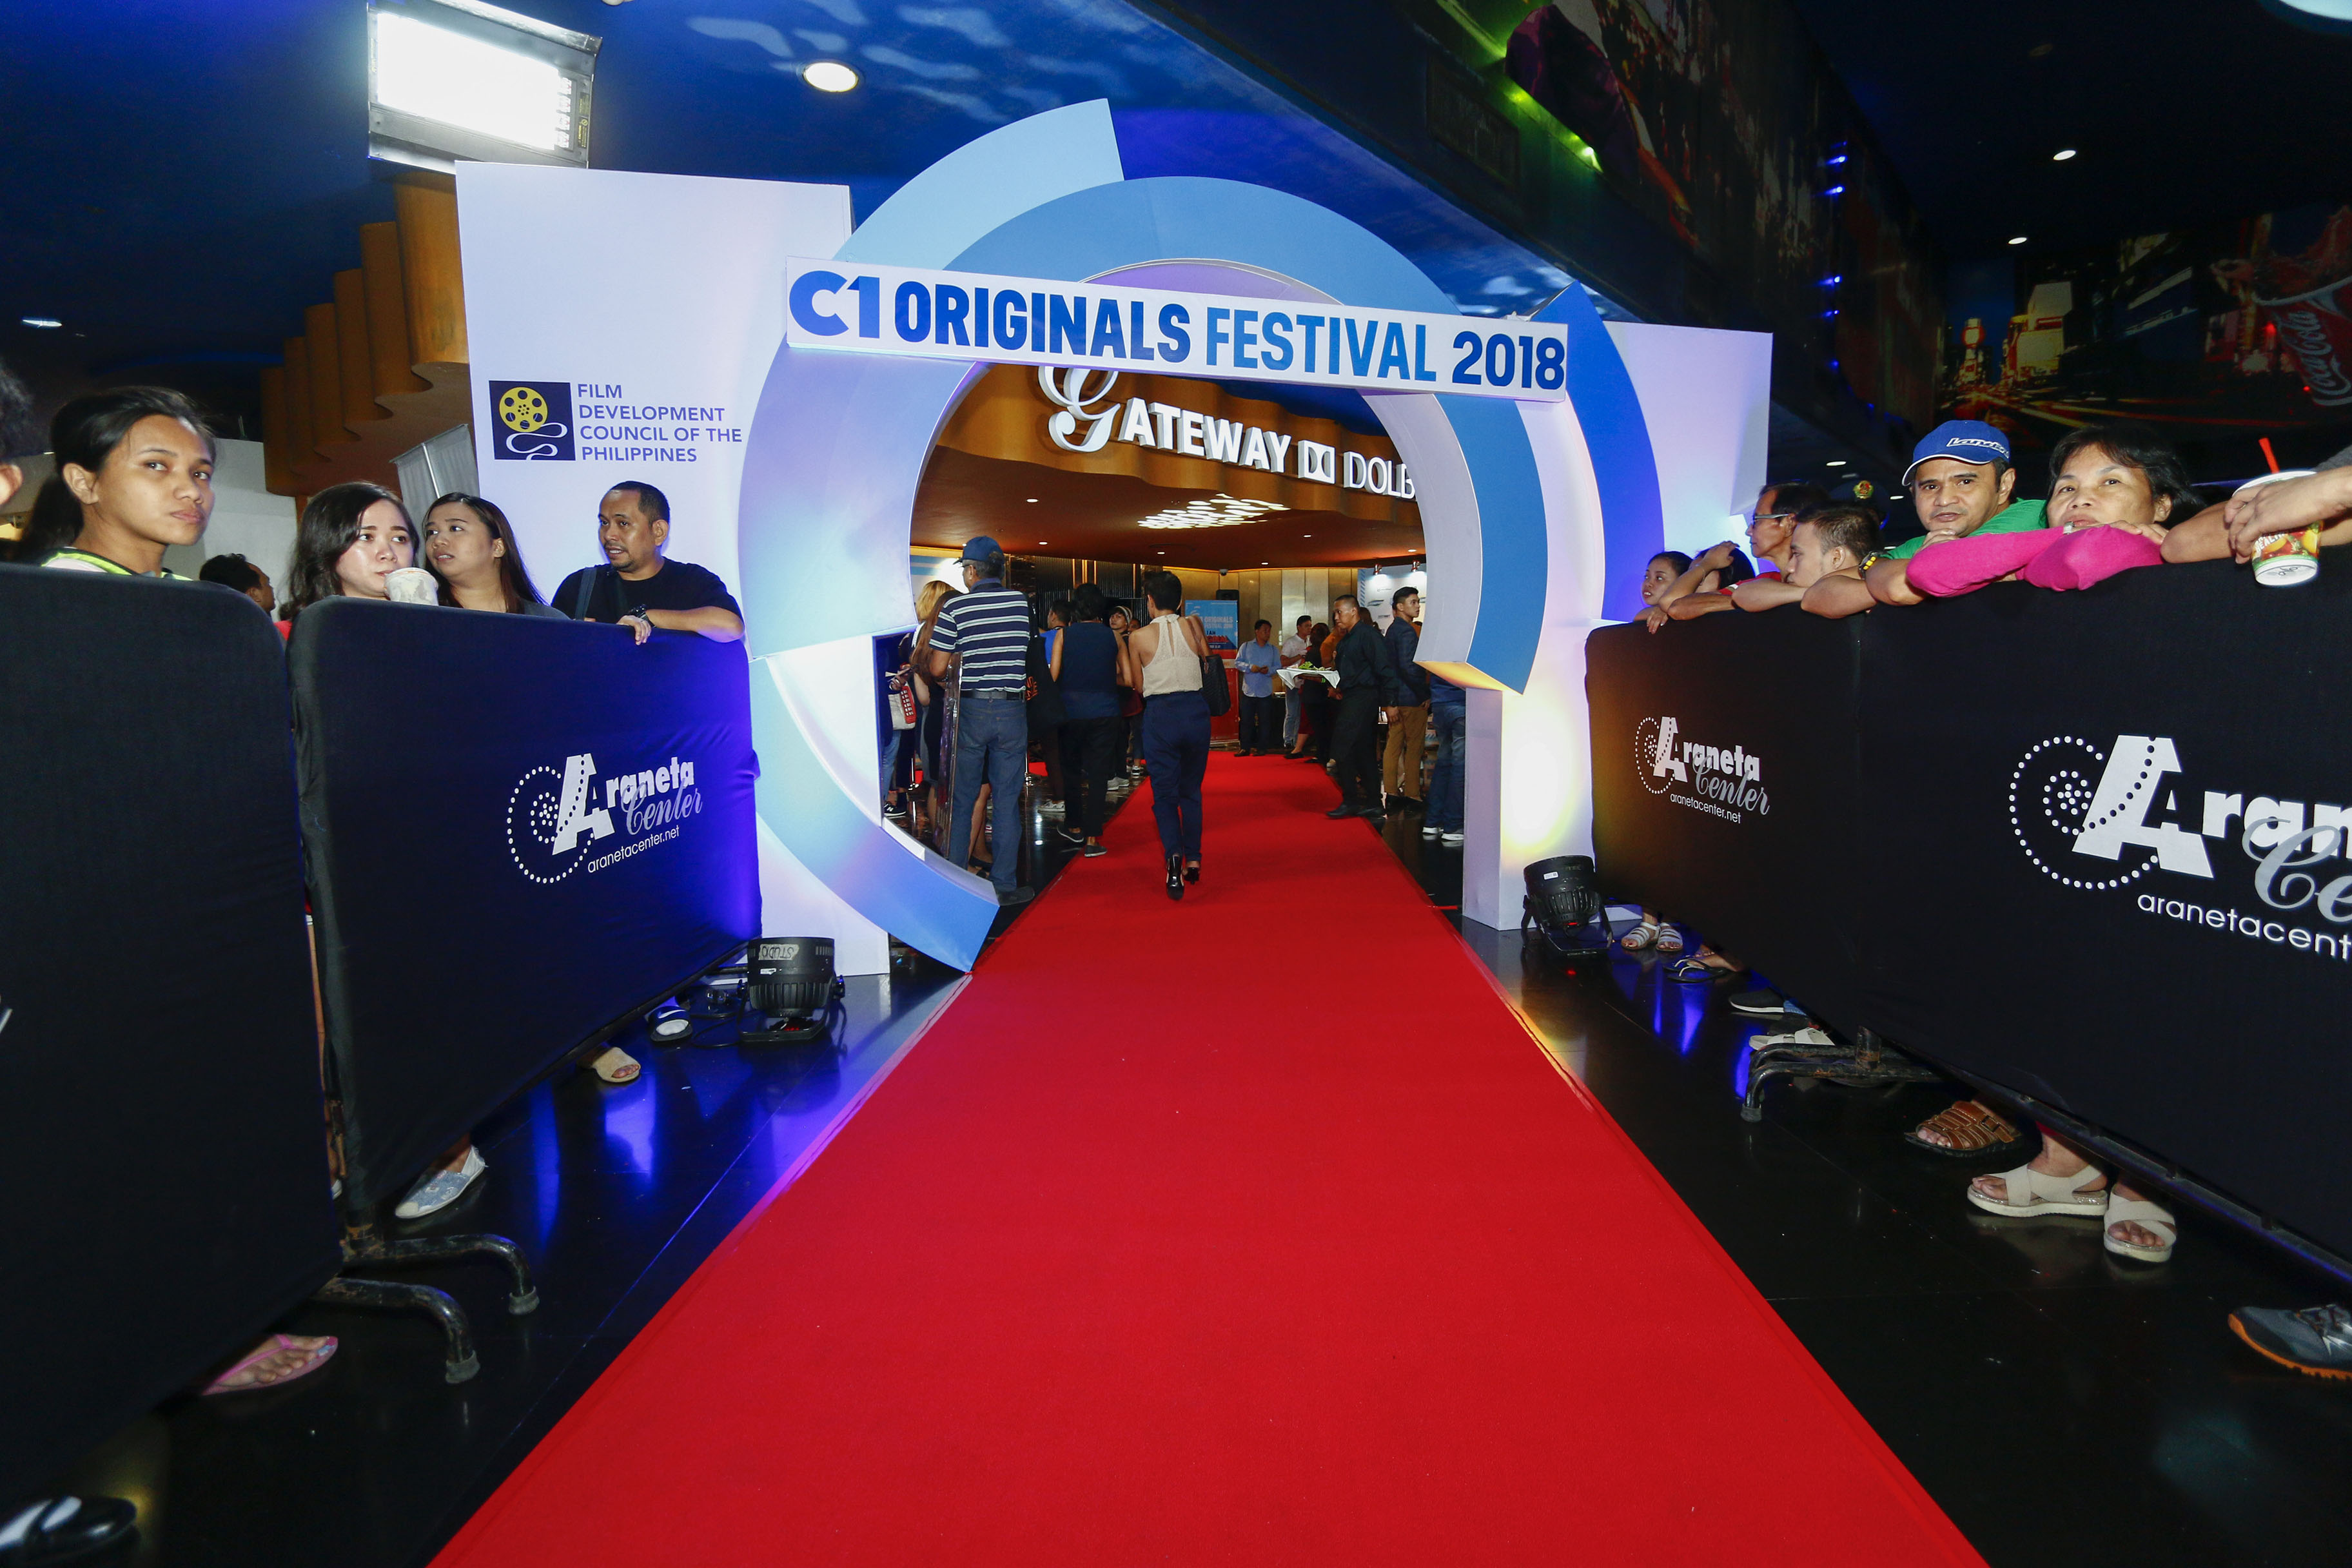 The opening night of C1 Originals 2018 in Gateway Dolby ATMOS